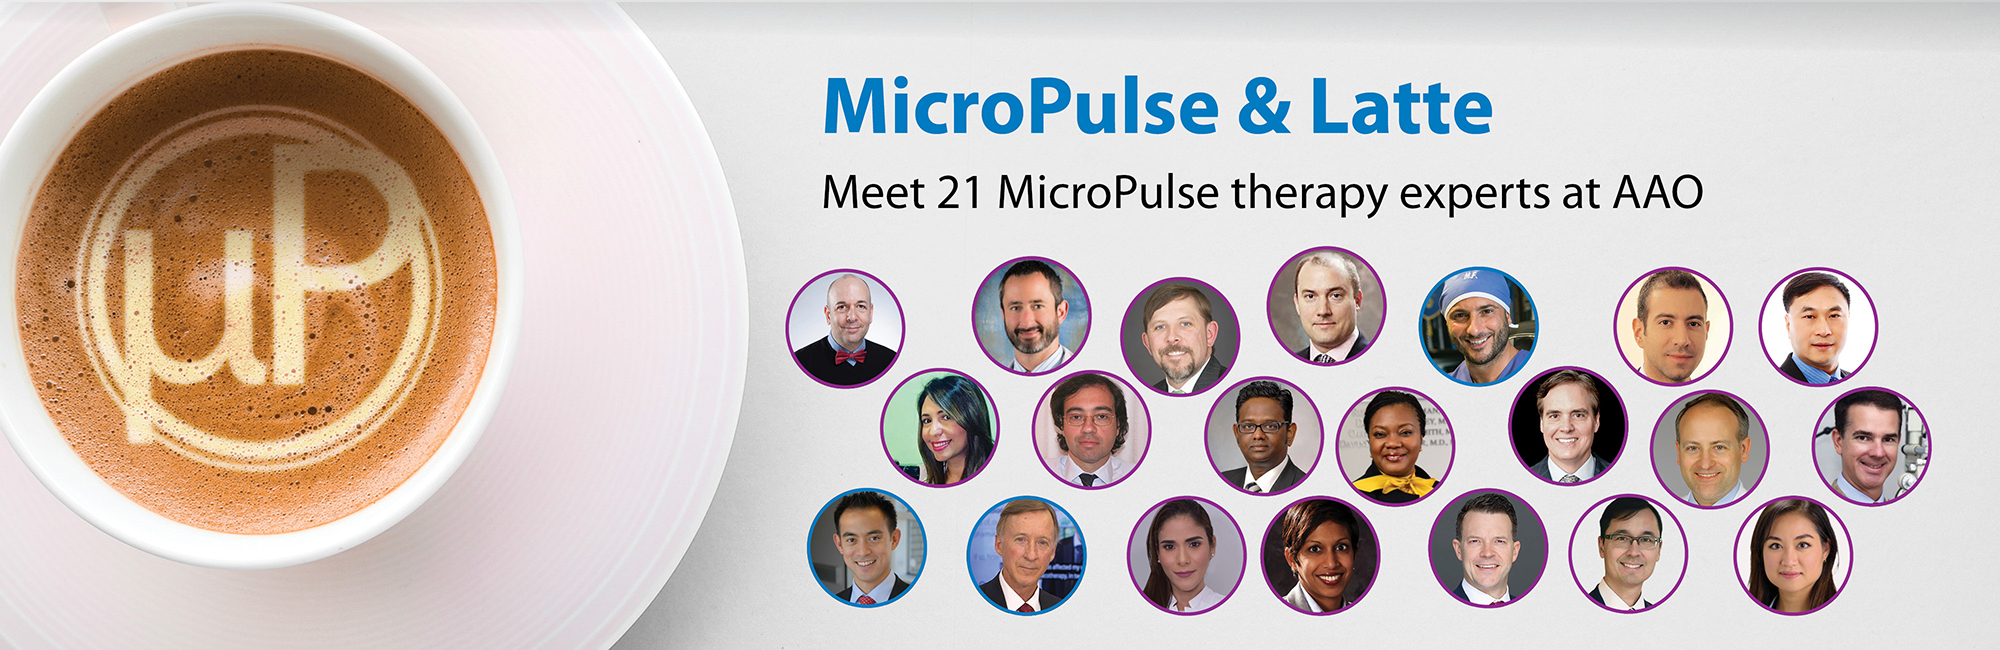 Meet MicroPulse Therapy Experts at AAO